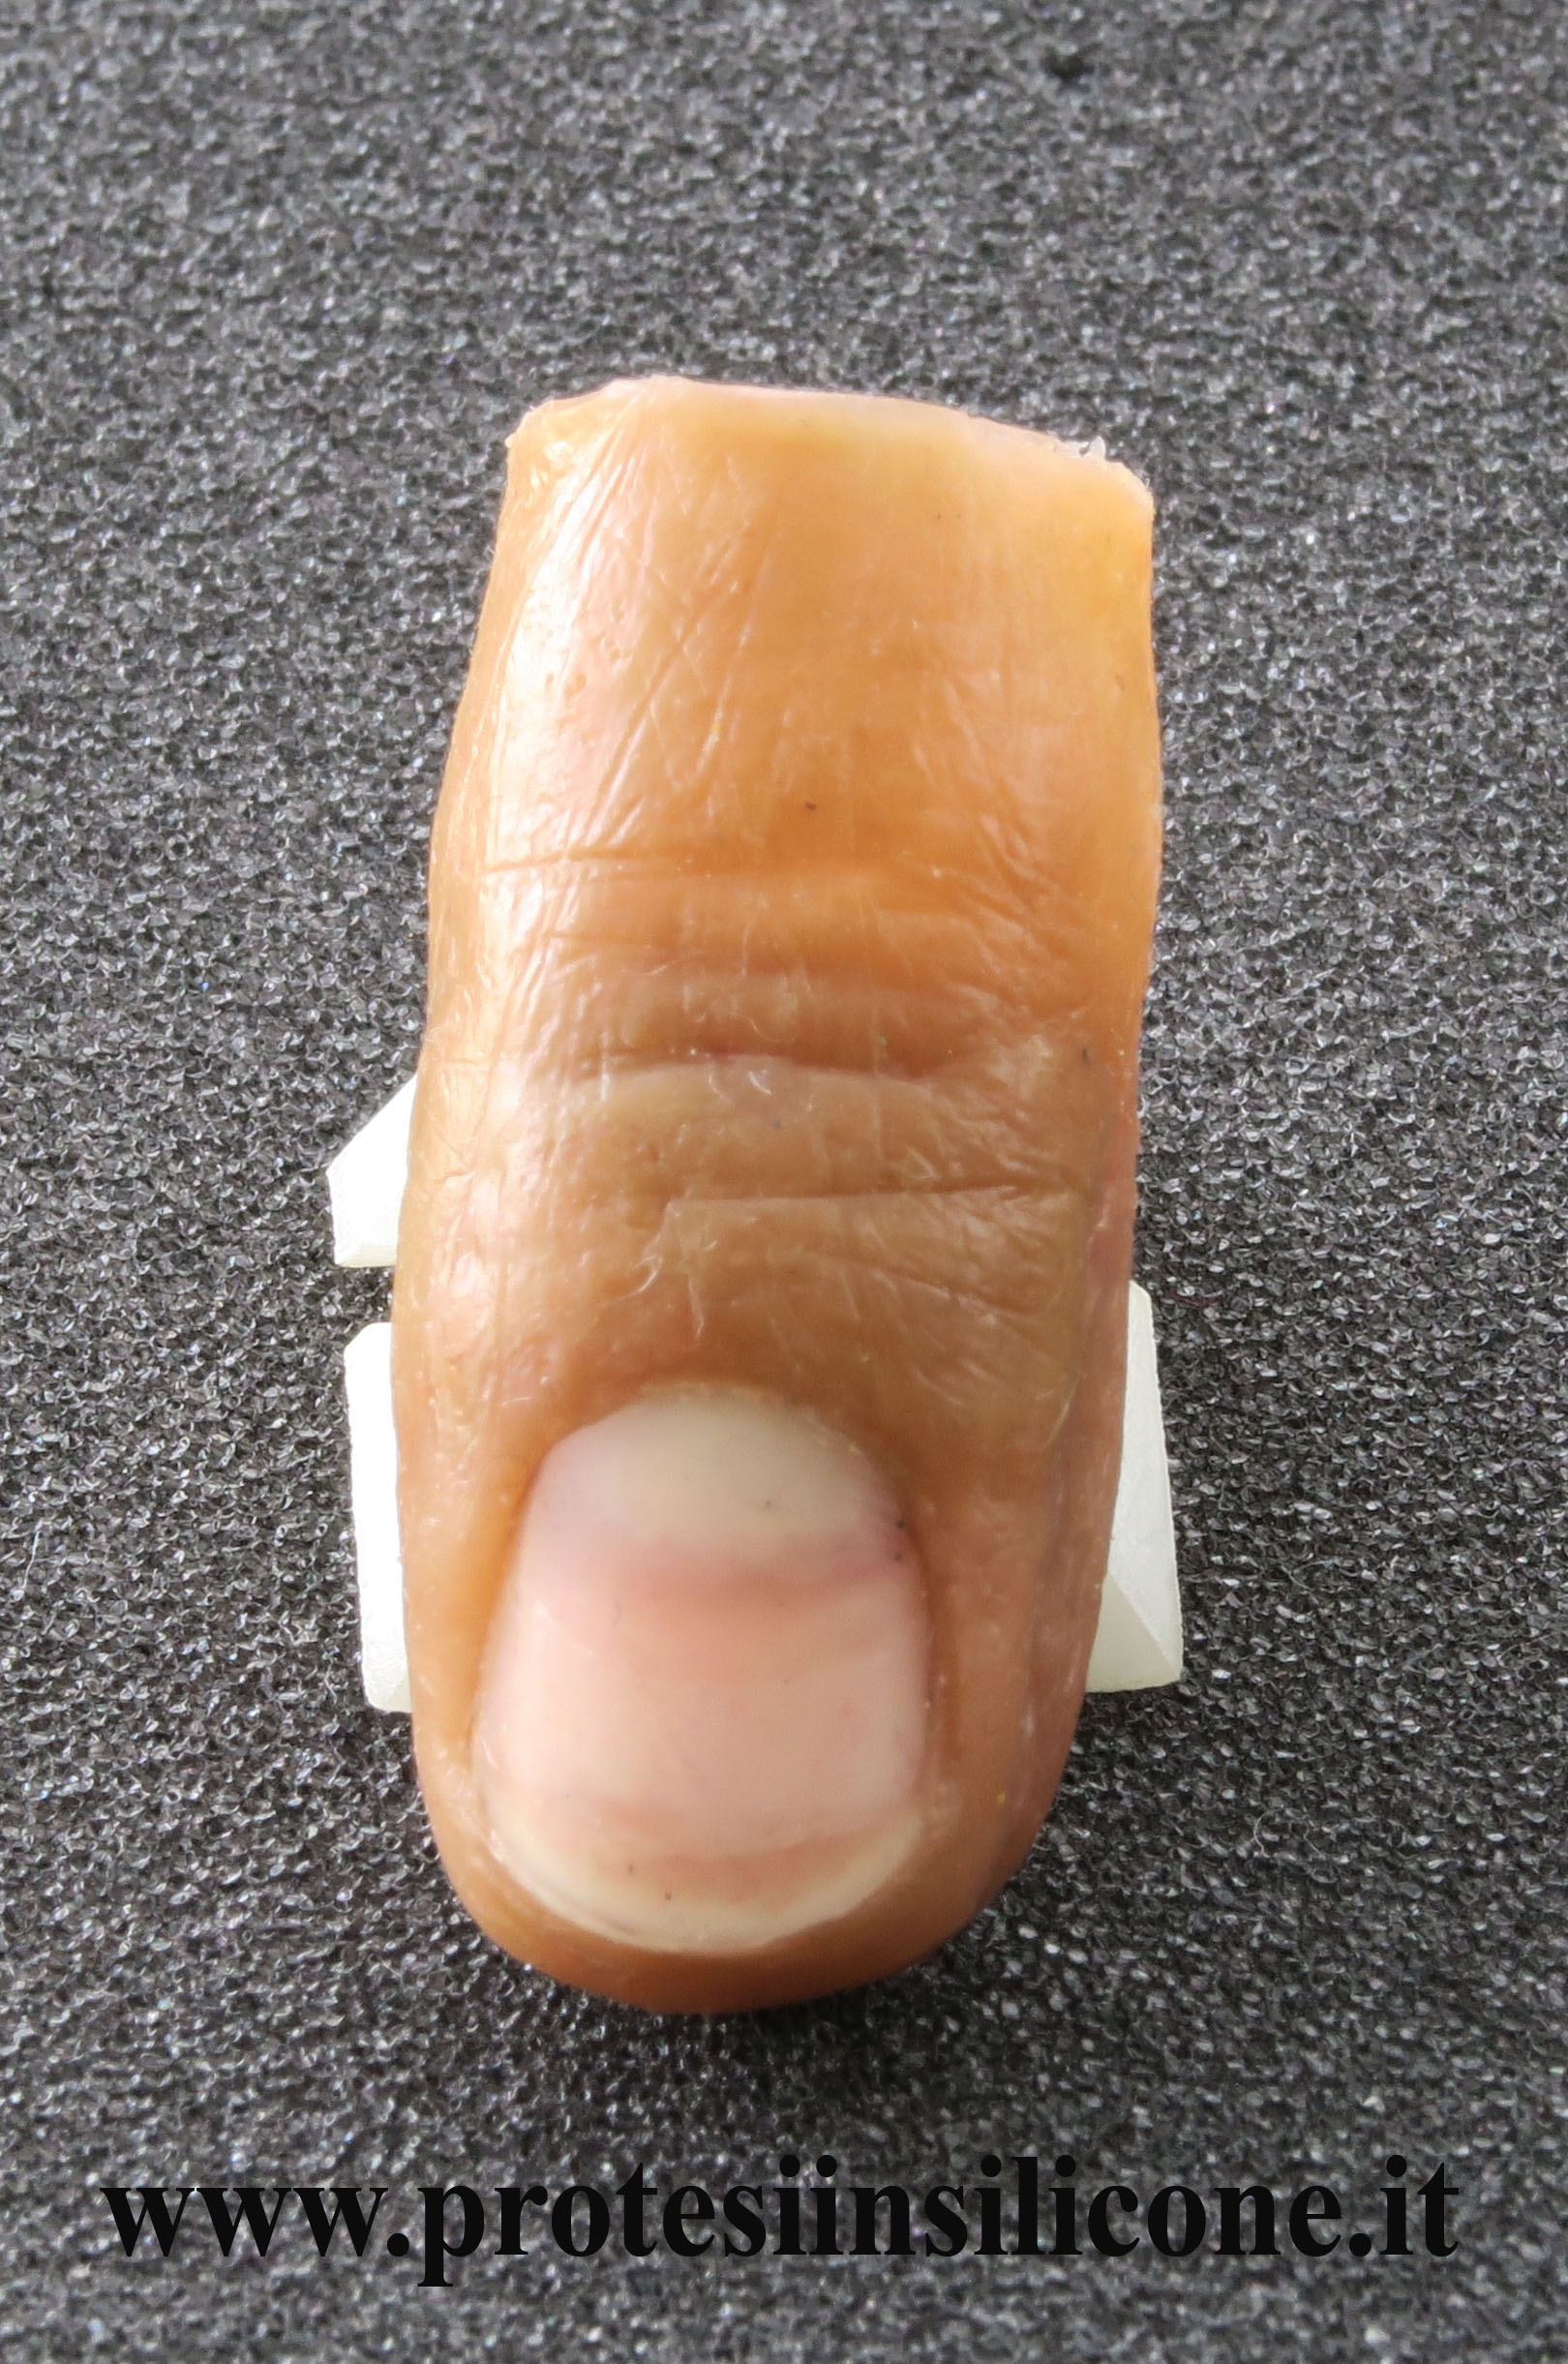 partial prosthesis of finger